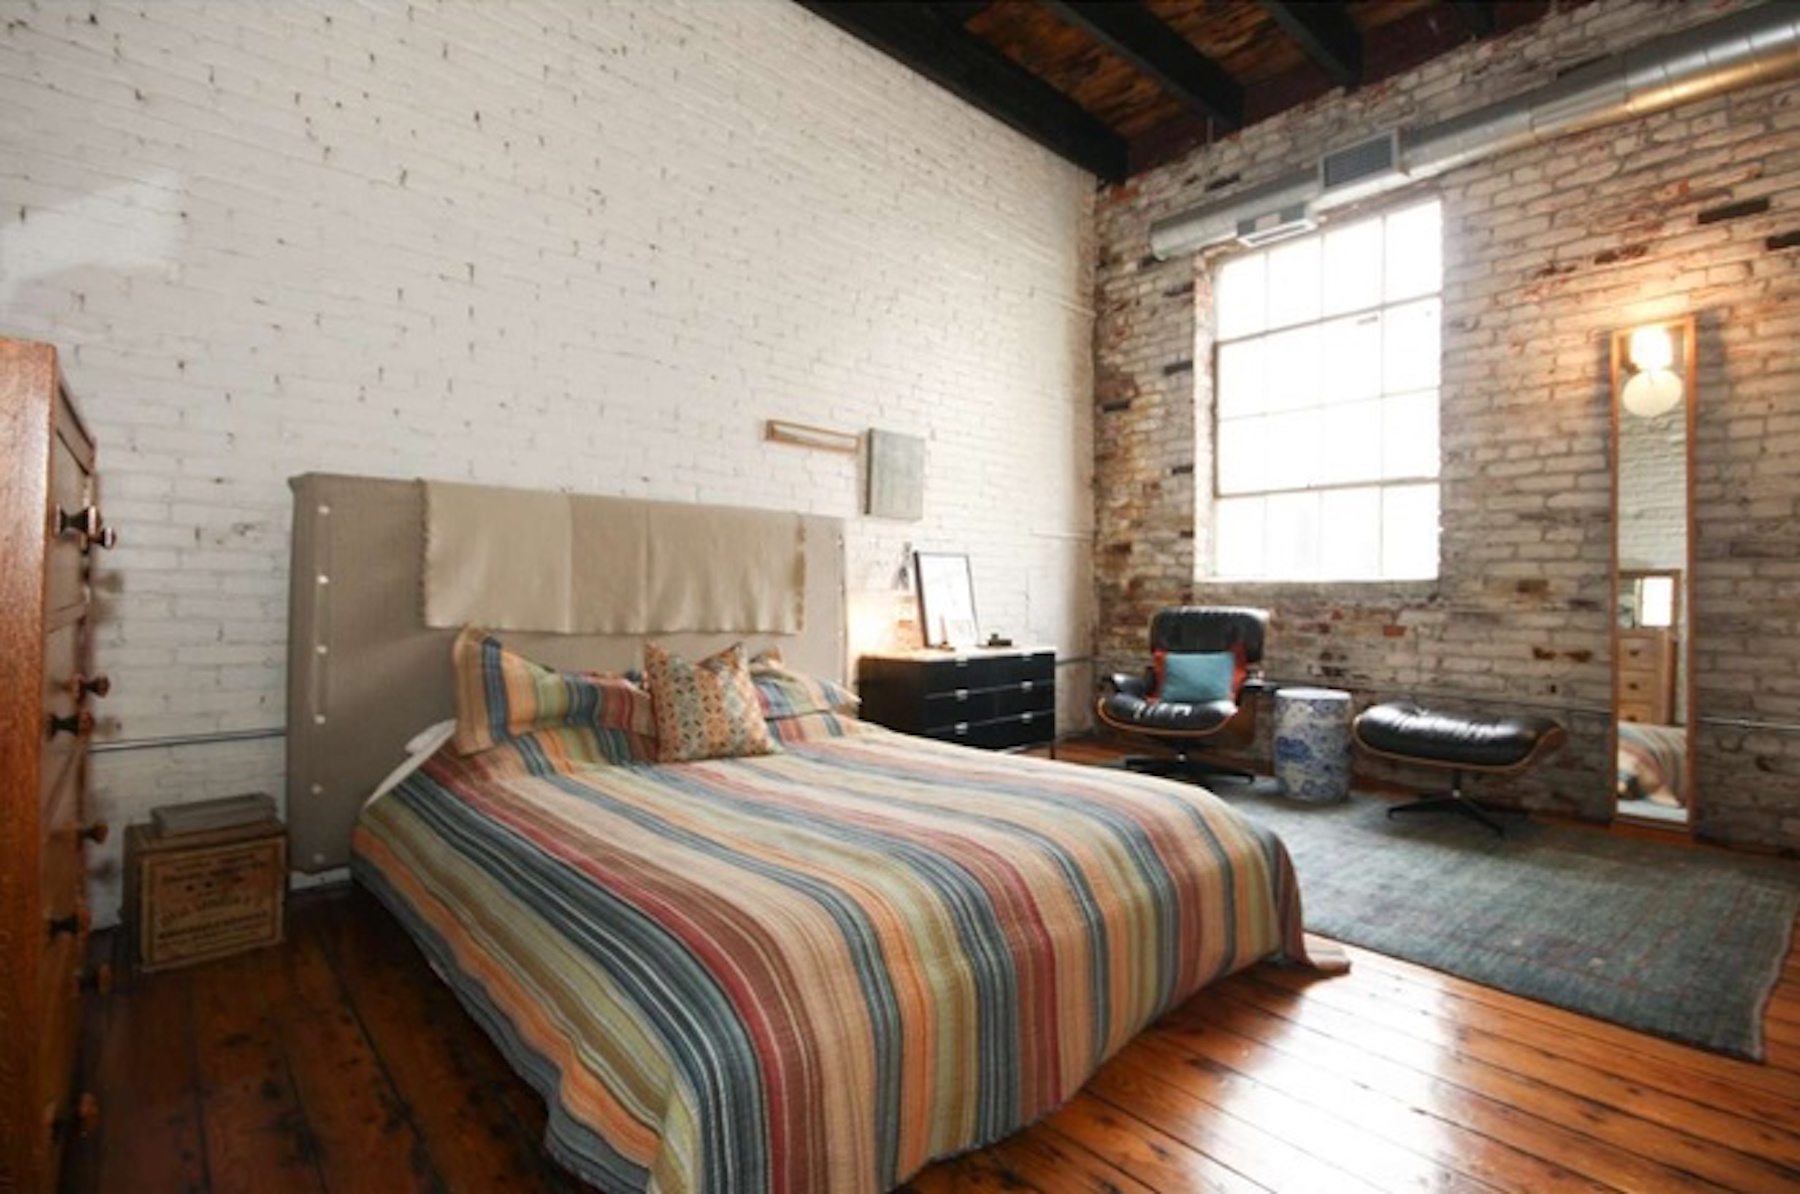 Cool Bella Vista loft above garage asks $619K - Curbed Philly